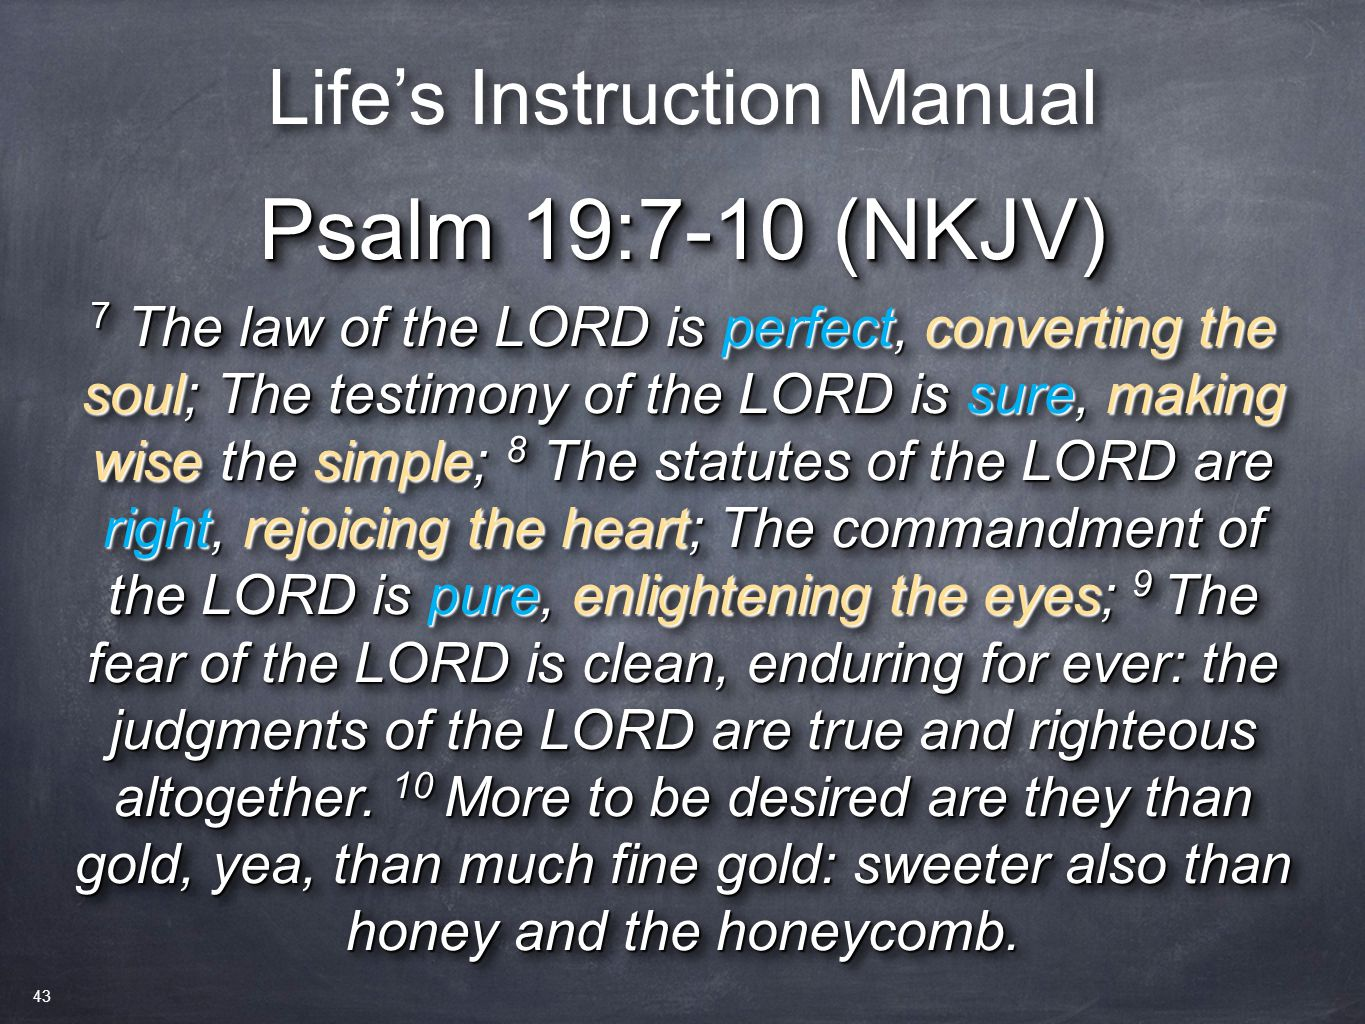 Psalm 19:7-10 (NKJV) 7 The law of the LORD is perfect, converting the soul; The testimony of the LORD is sure, making wise the simple; 8 The statutes